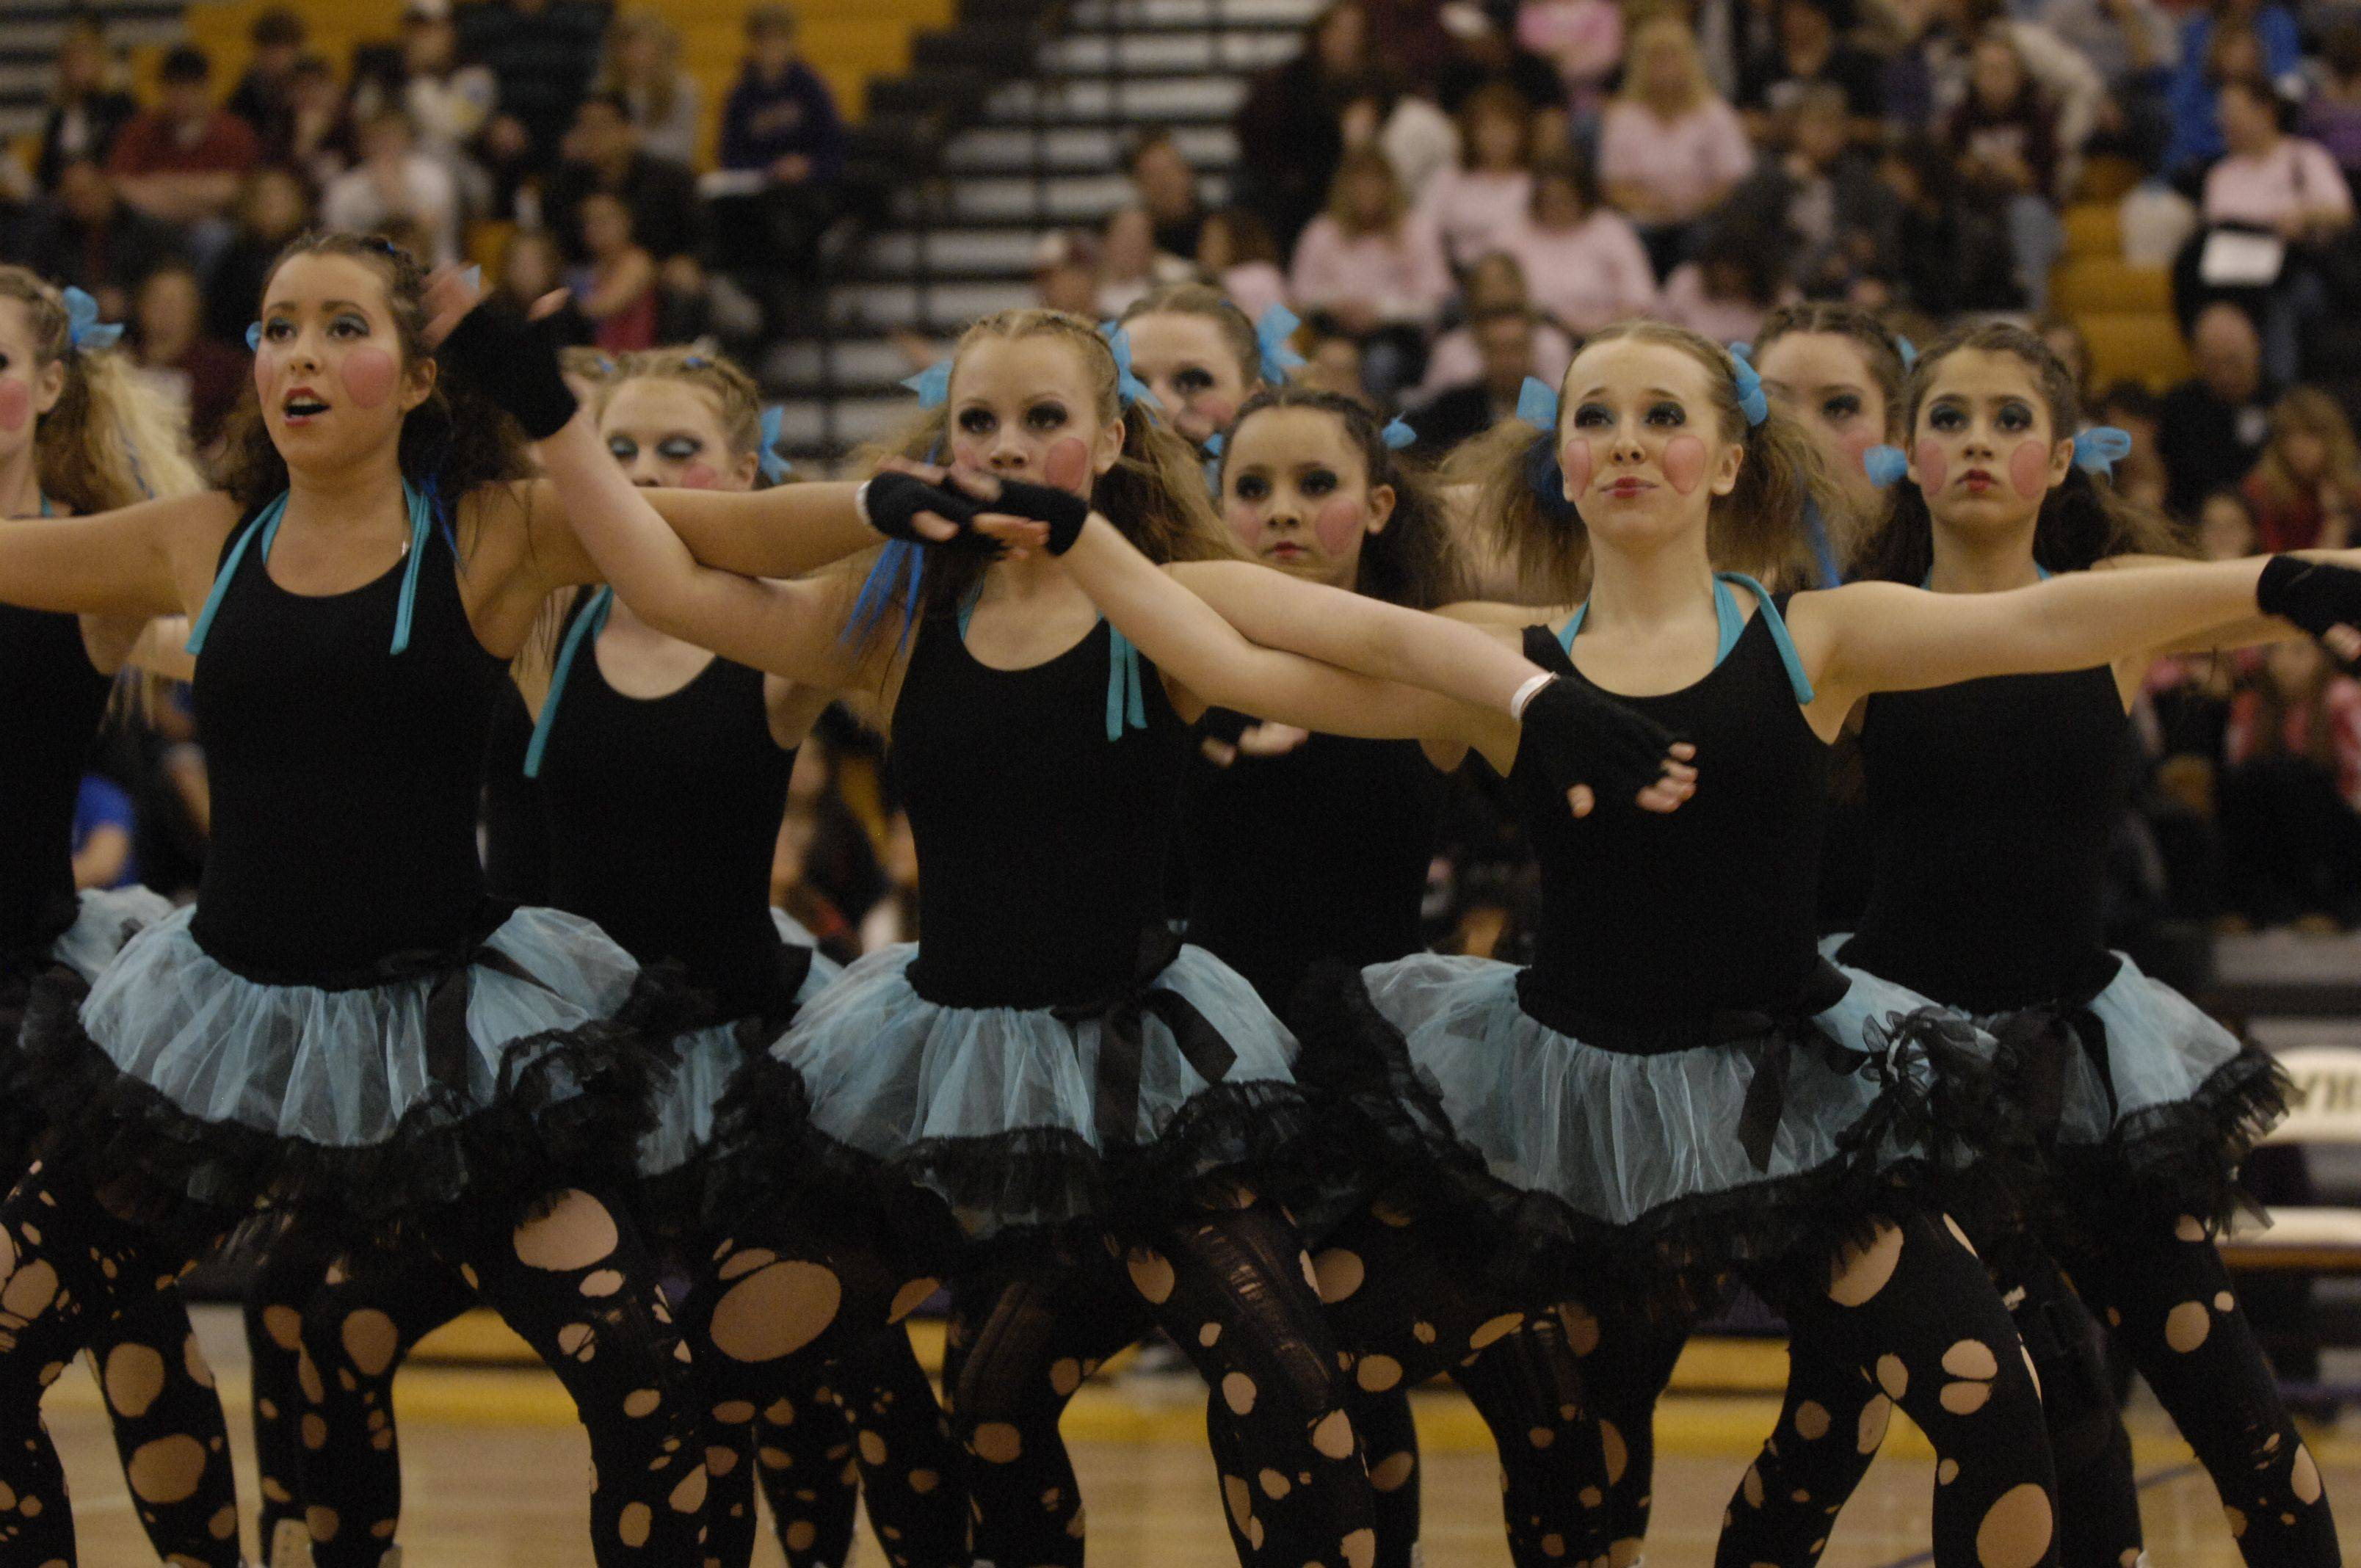 Maine West High School performs in the AAA Hip Hop division during the Team Dance Illinois Wauconda Invitational competition at Wauconda High School.